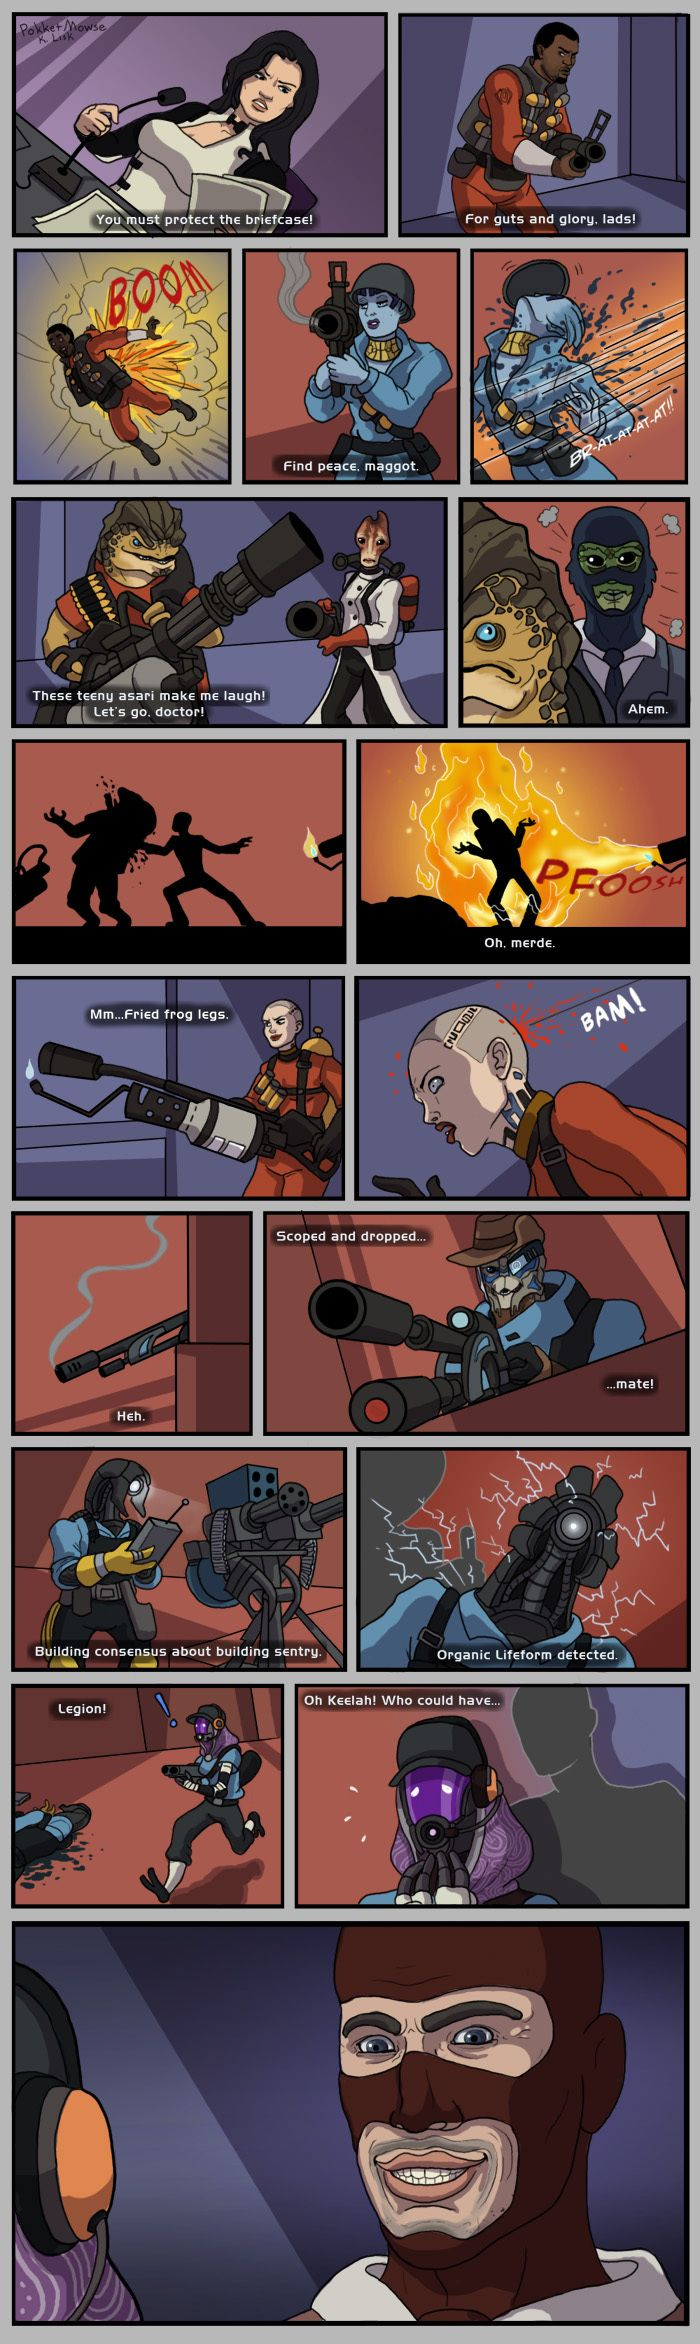 When Mass Effect meets TF2 #games #teamfortress2 #steam #tf2 #SteamNewRelease #gaming #Valve